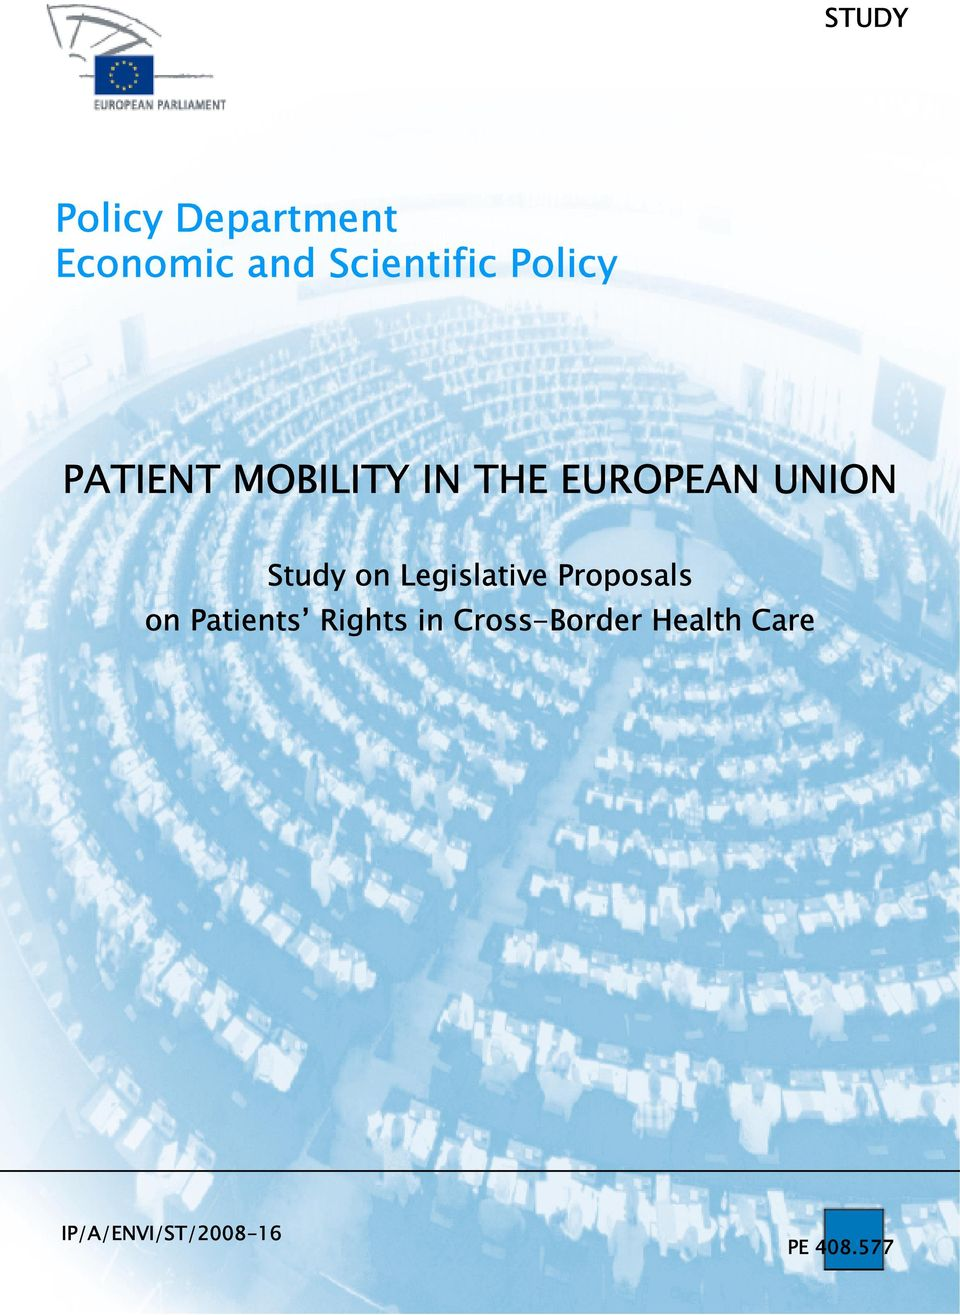 on Legislative Proposals on Patients Rights in